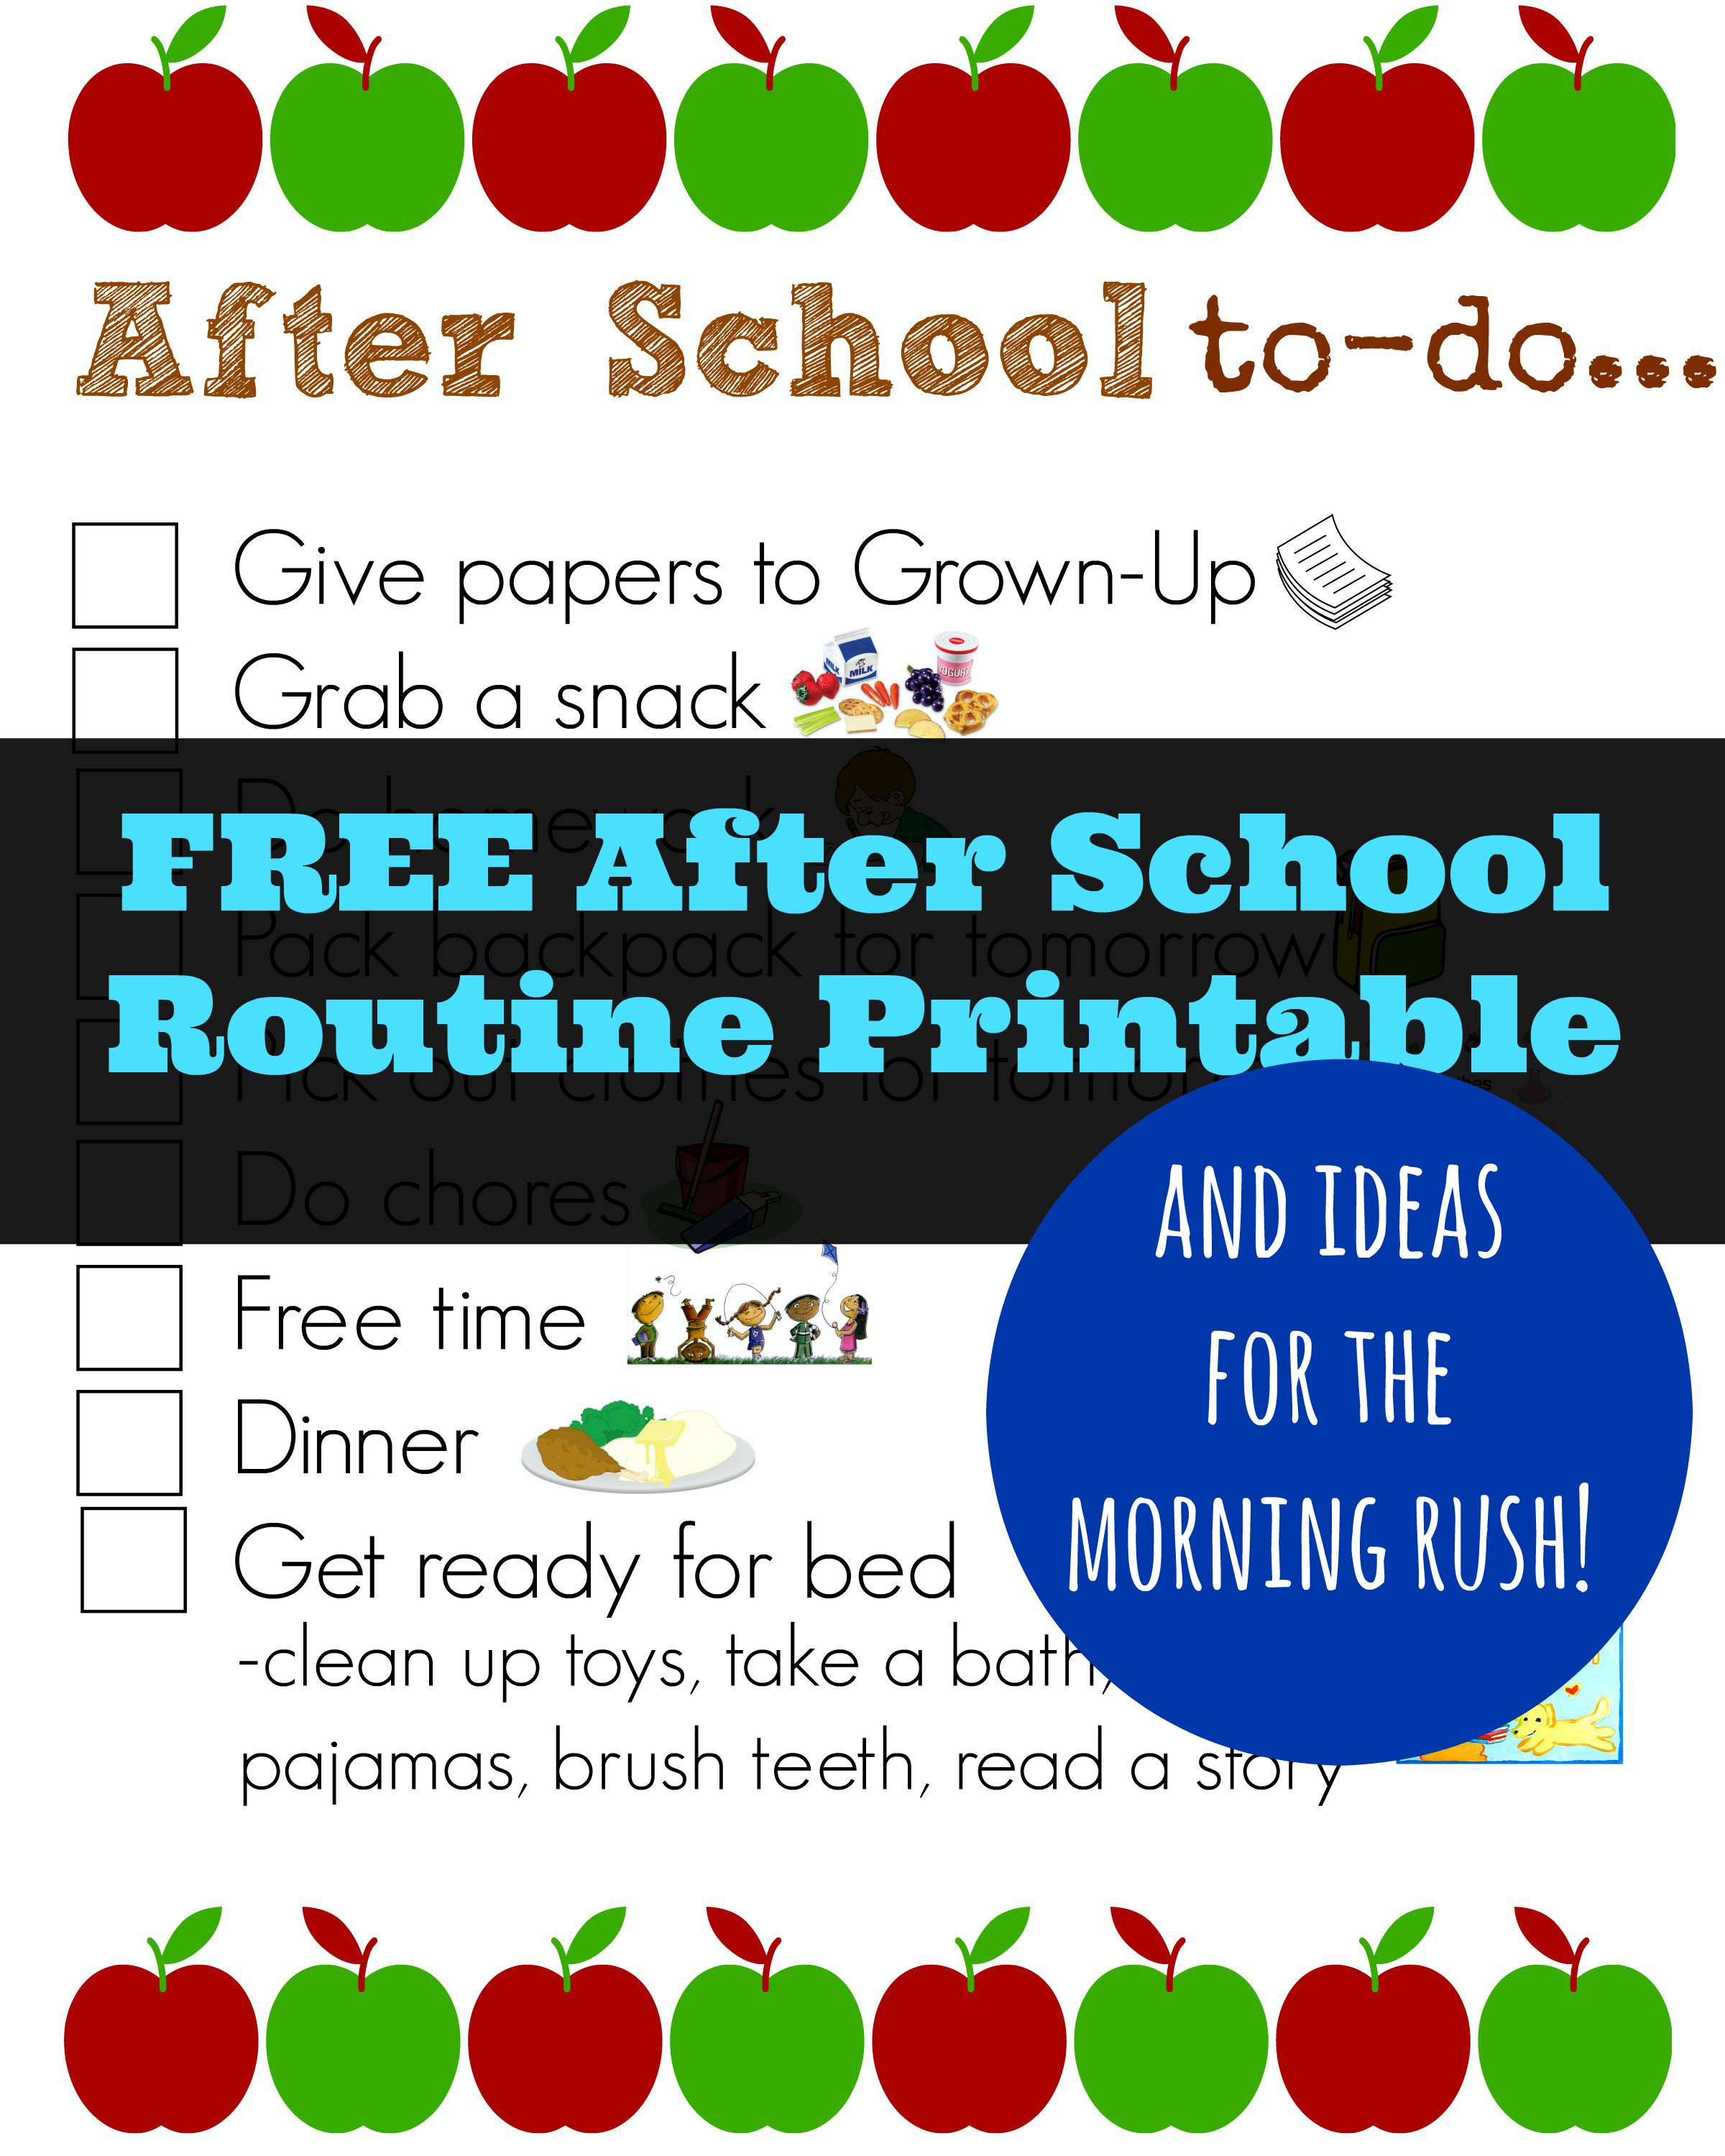 graphic regarding After School Schedule Printable referred to as Totally free The moment College or university Agenda Printable Mandys Recipe Box